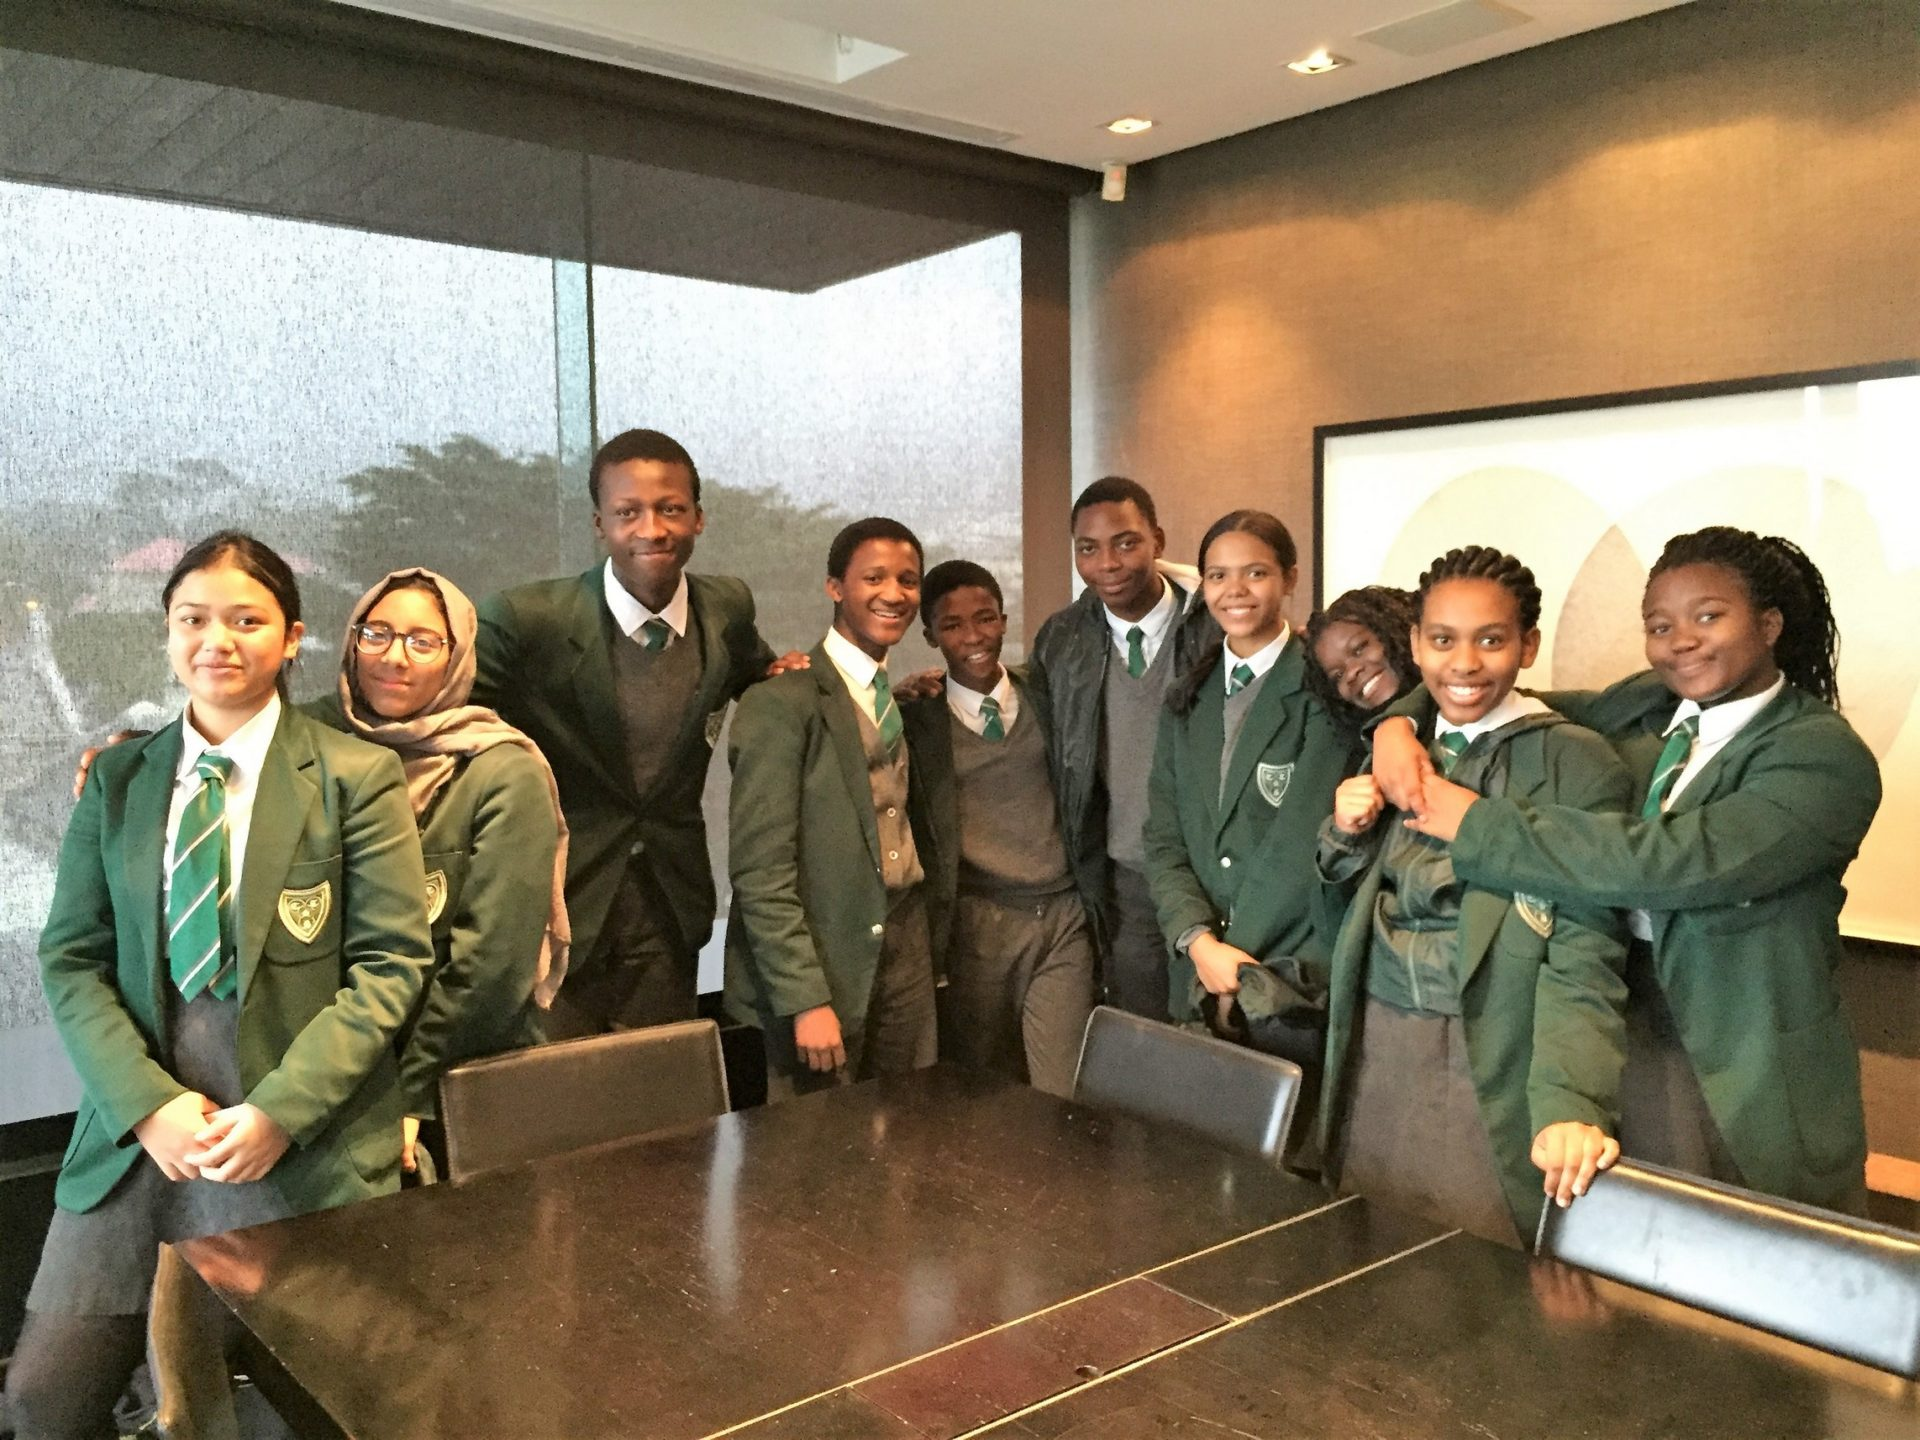 scholar open day with cape town high school saota architecture and